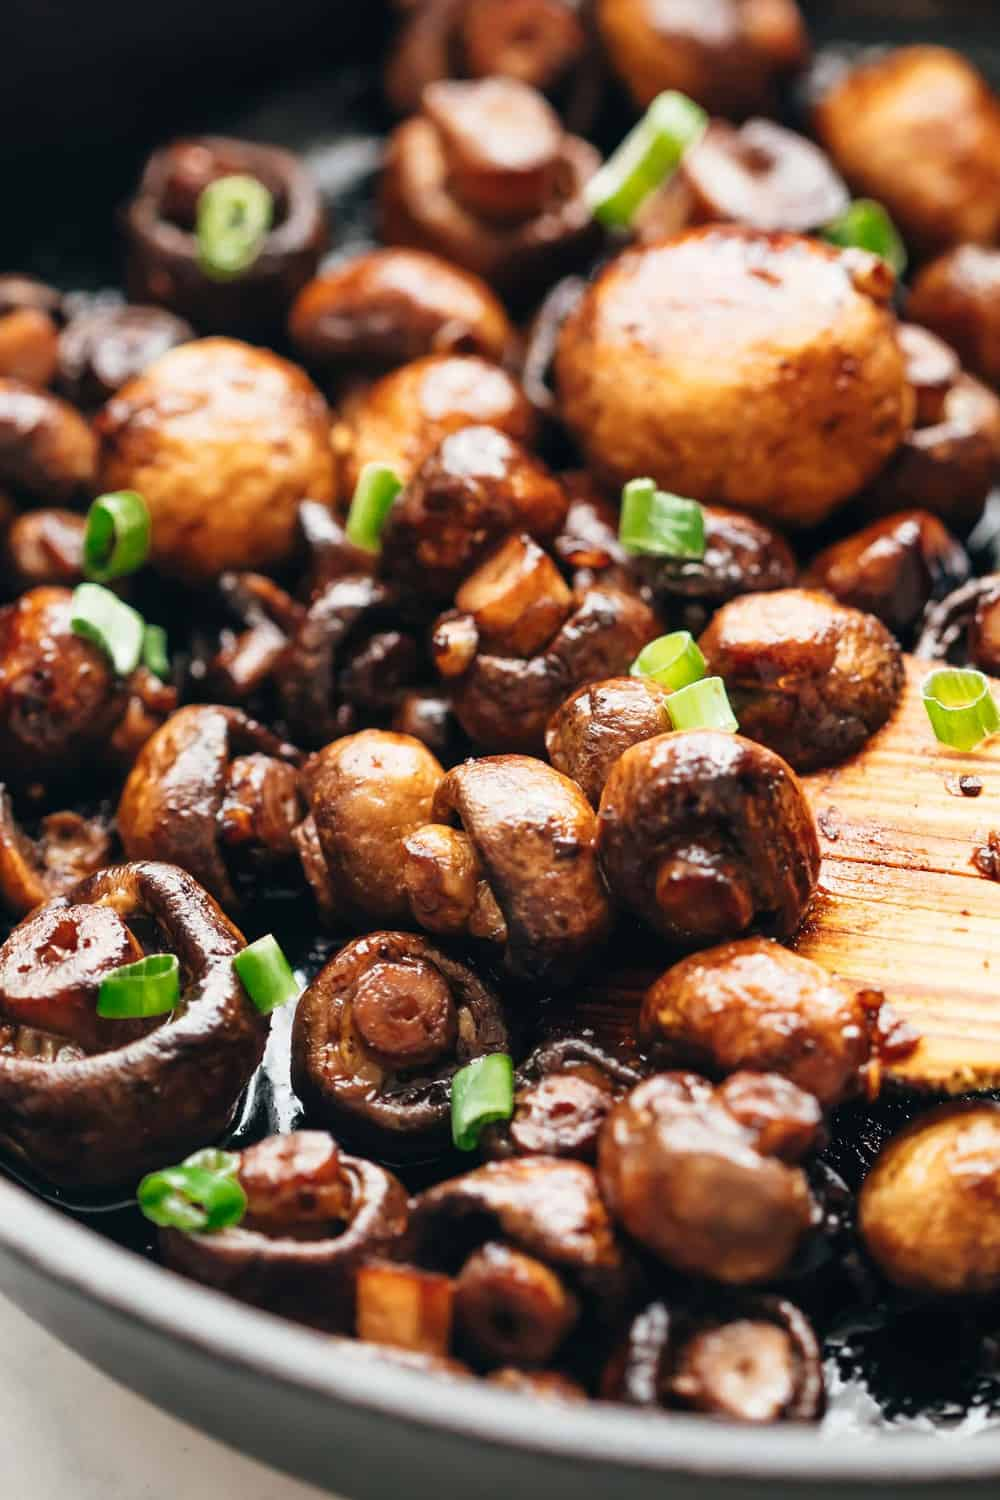 Closeup of Garlic Balsamic Mushrooms